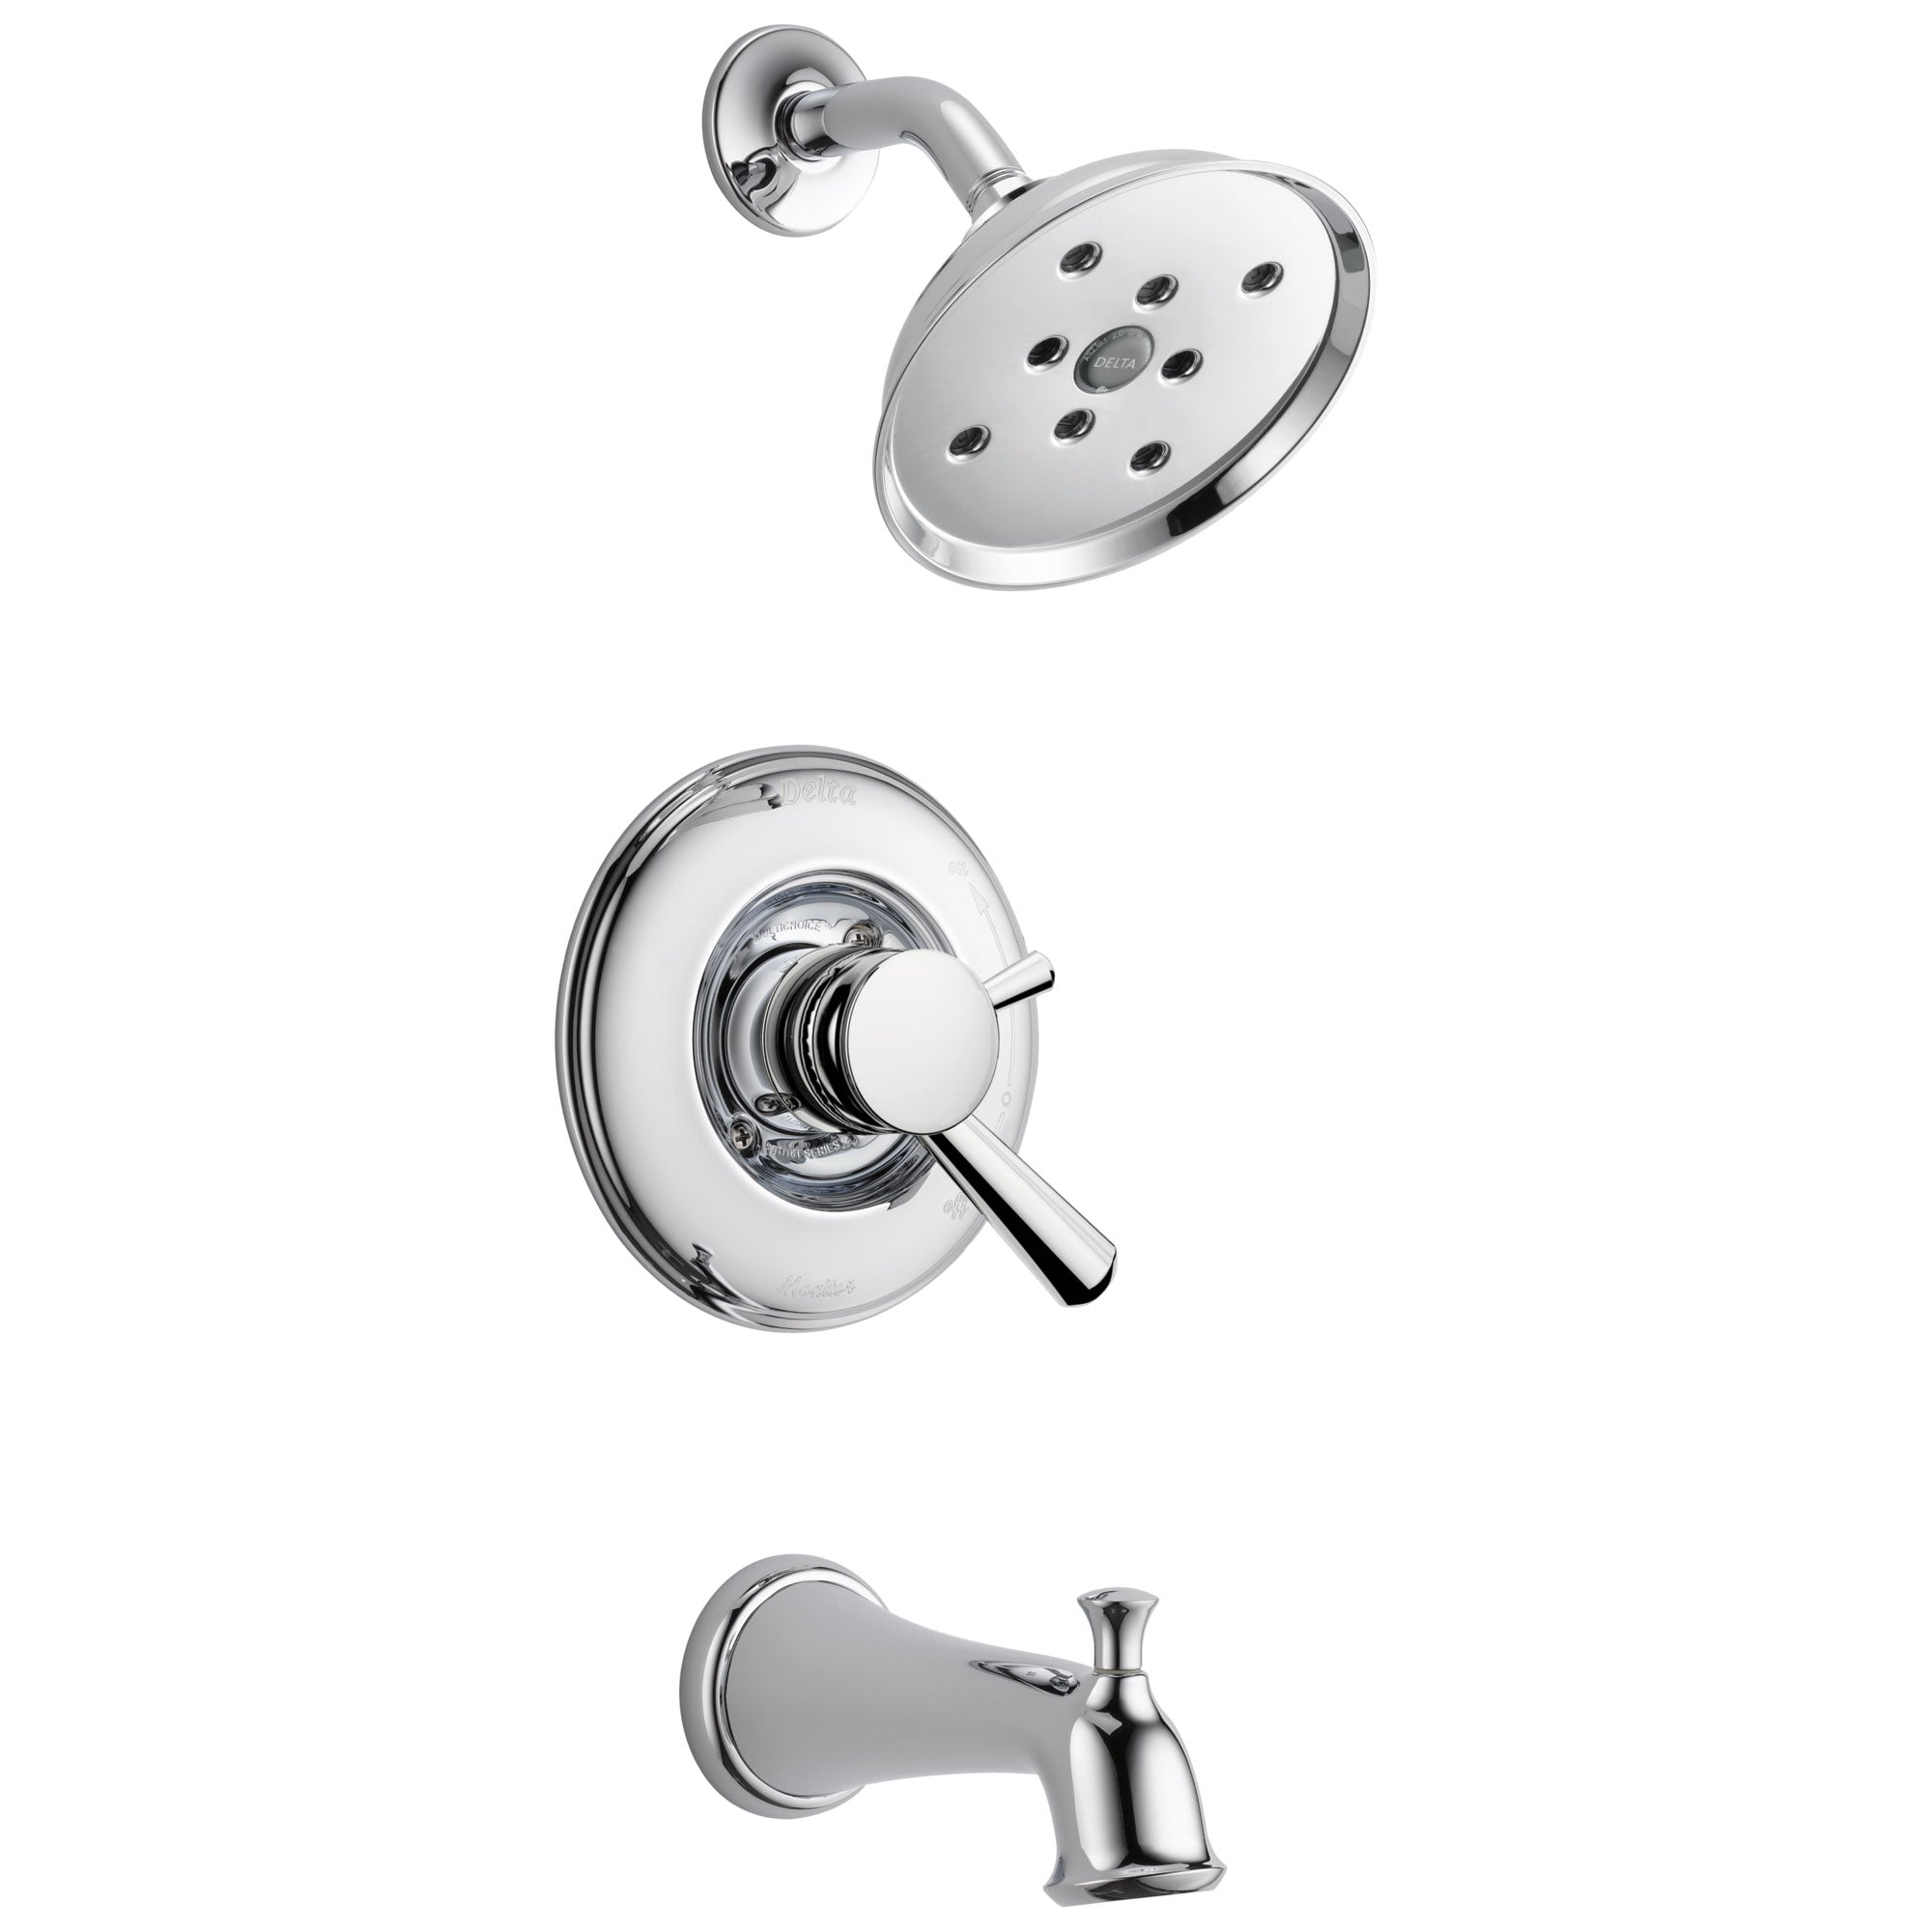 Delta Linden Collection Chrome Finish Monitor 17 Series H2Okinetic Tub and Shower Combination Faucet Trim Kit (Valve Sold Separately) DT17493